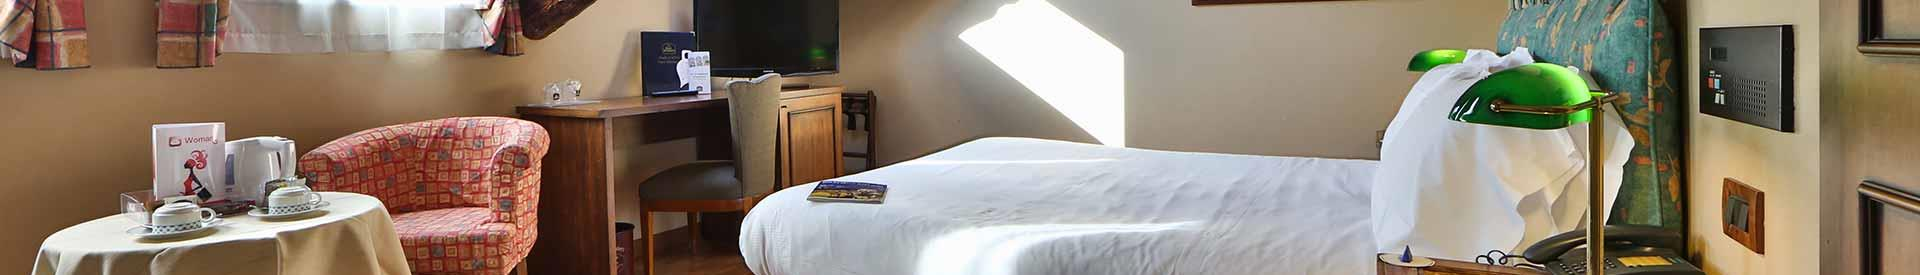 Looking for a hotel for your stay in Torino (TO)? Book/reserve at the Best Western Hotel Piemontese